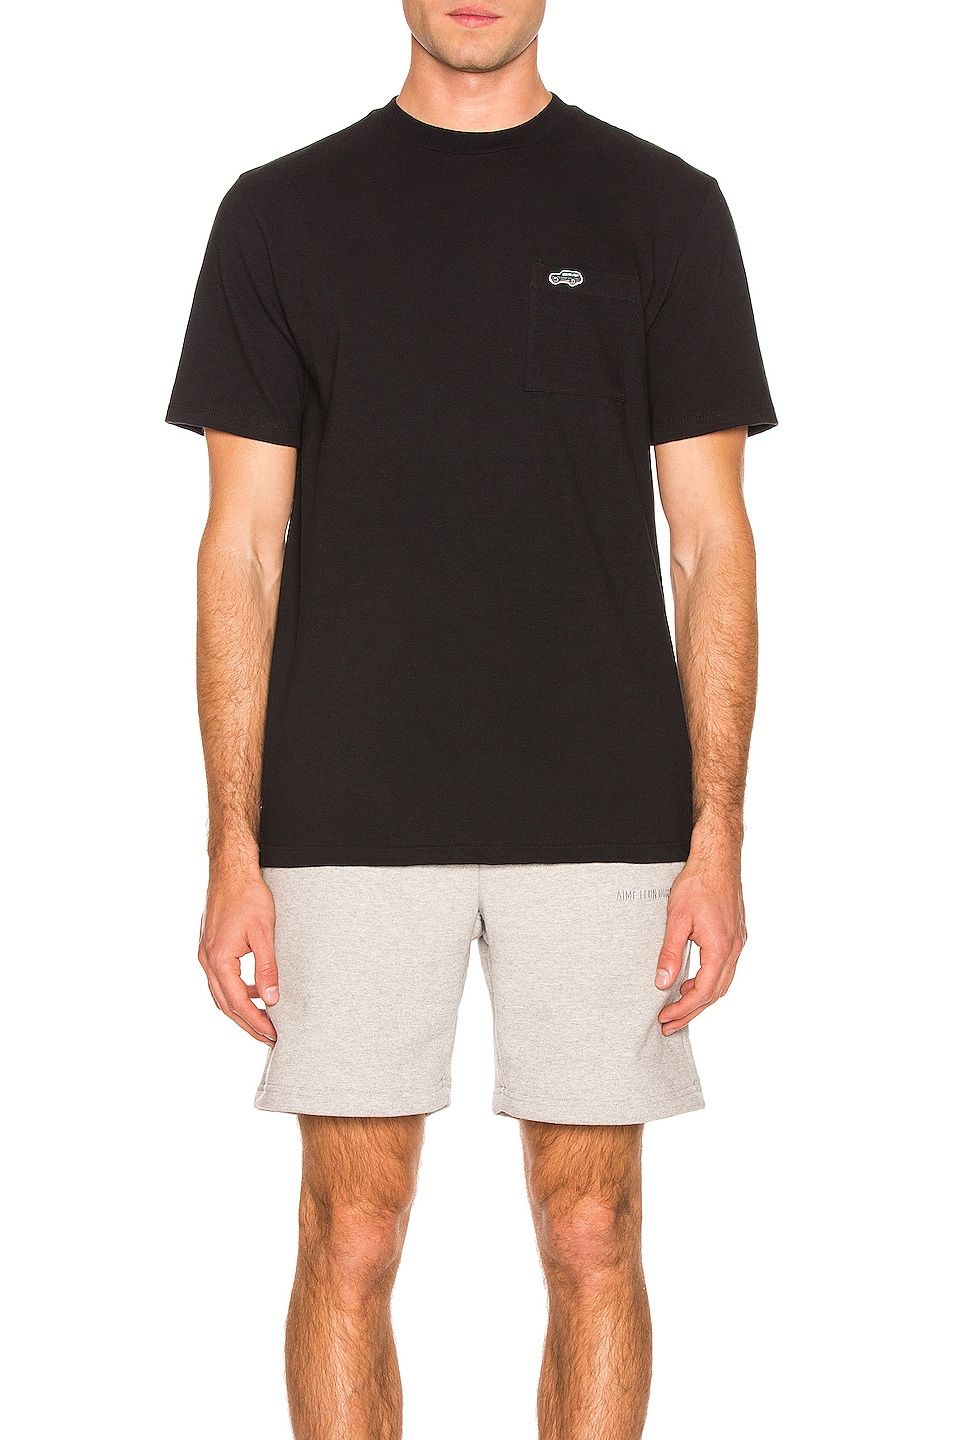 Image 1 of Aime Leon Dore Pocket With Patch Tee in Black